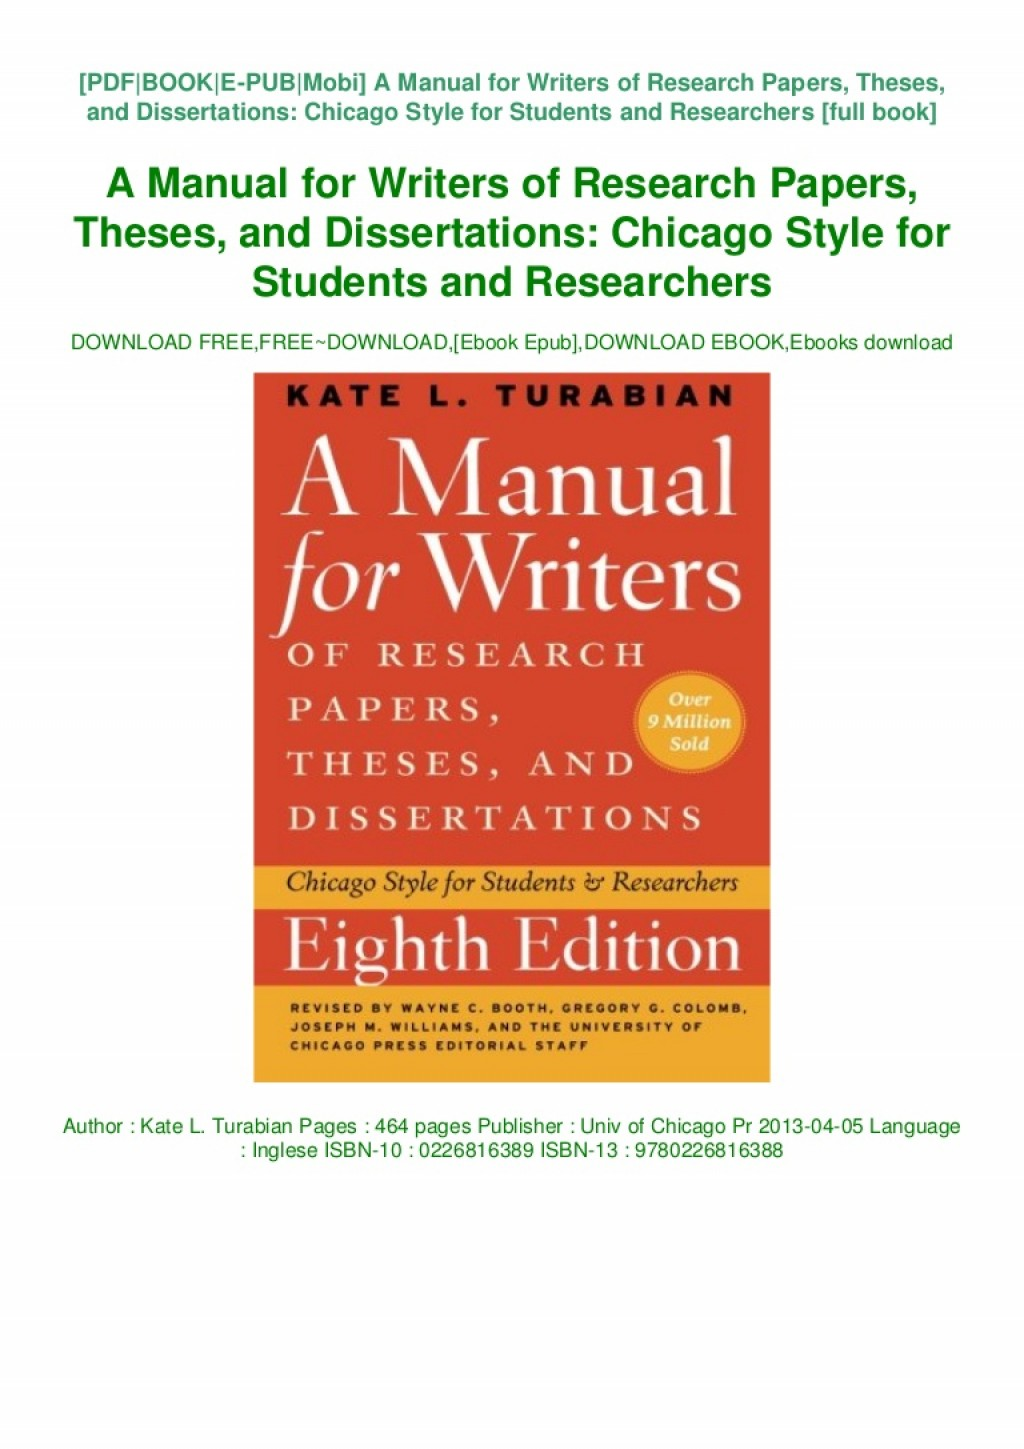 005 Manual For Writers Of Researchs Theses And Dissertations Book Thumbnail Magnificent Research Papers A 8th Pdf Amazon Large